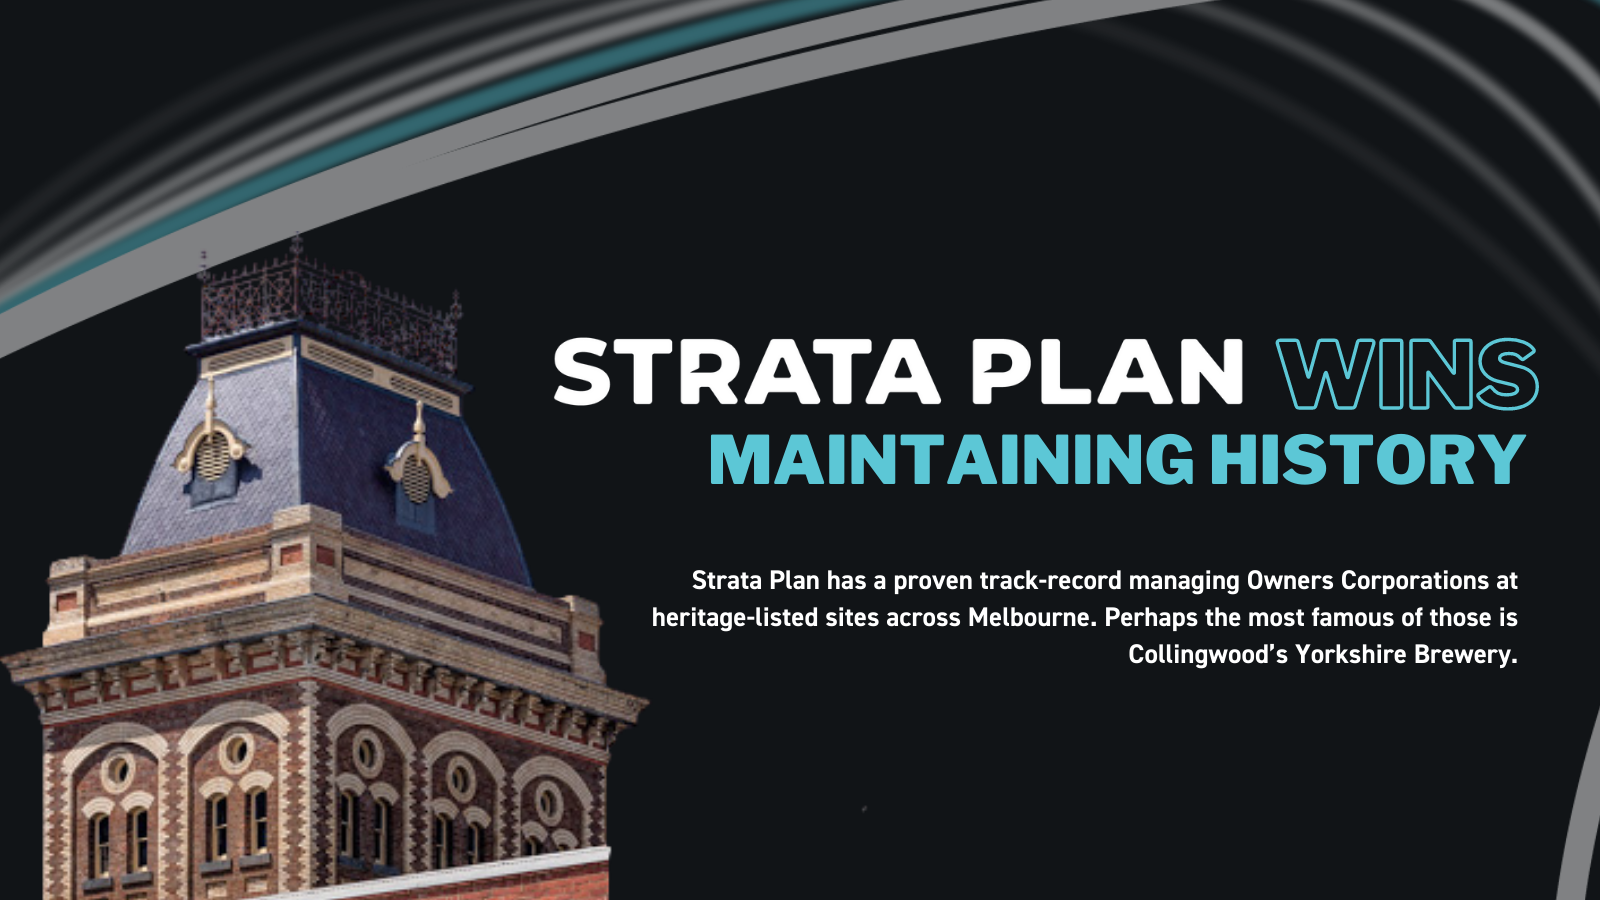 Strata Plan Wins: Managing an Owners Corporation in a heritage listed site